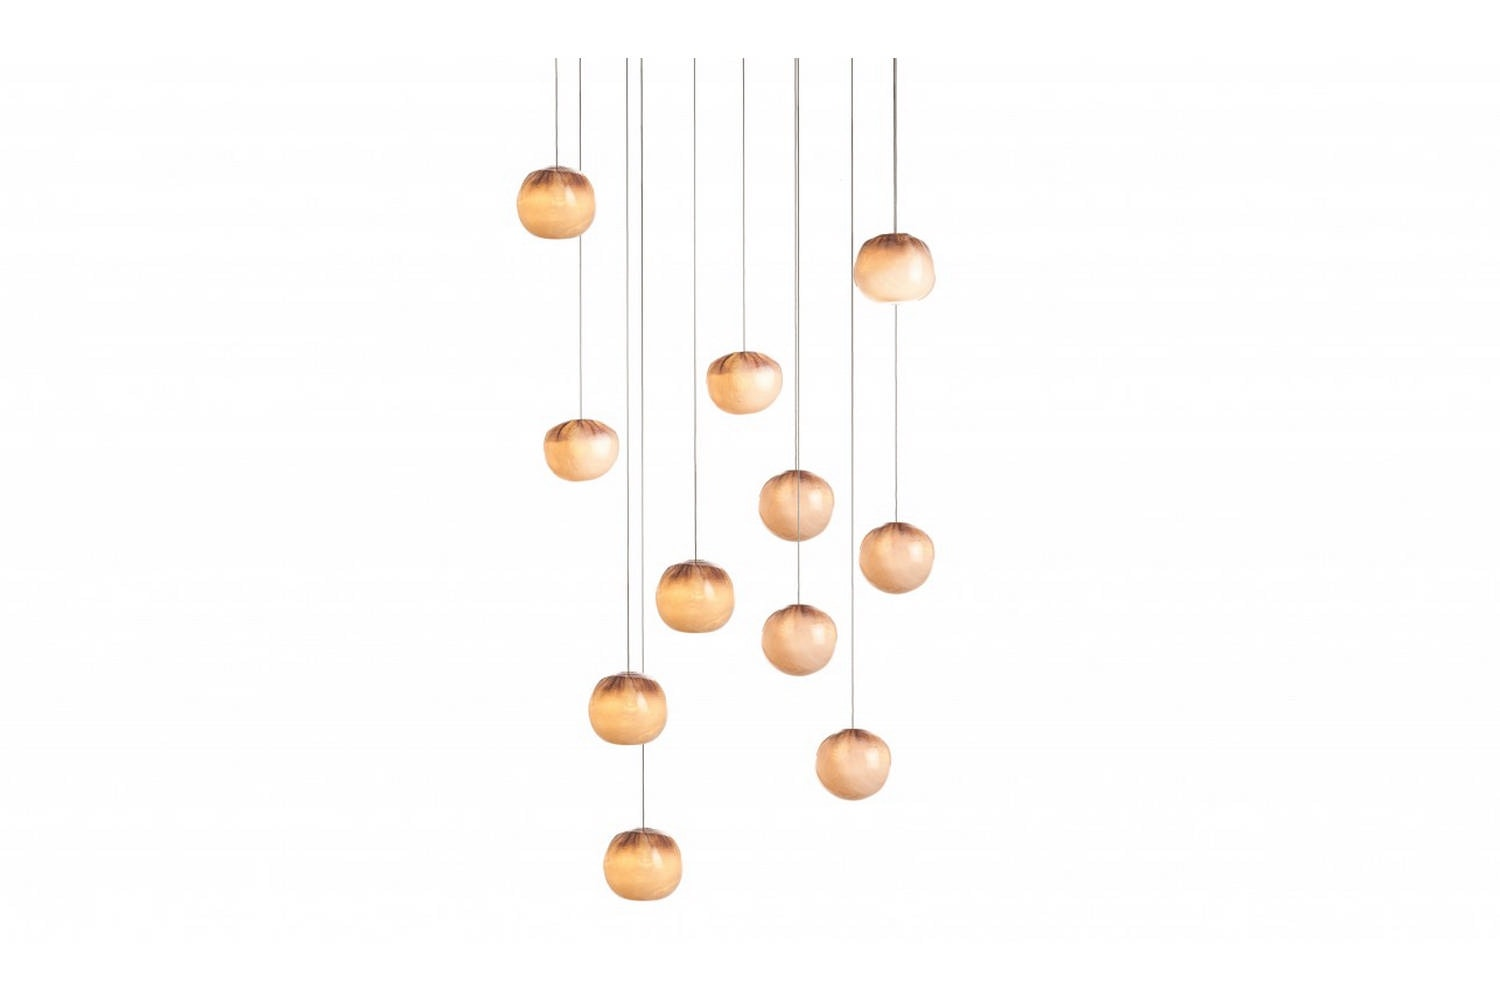 84.11 Suspension Lamp by Omer Arbel for Bocci